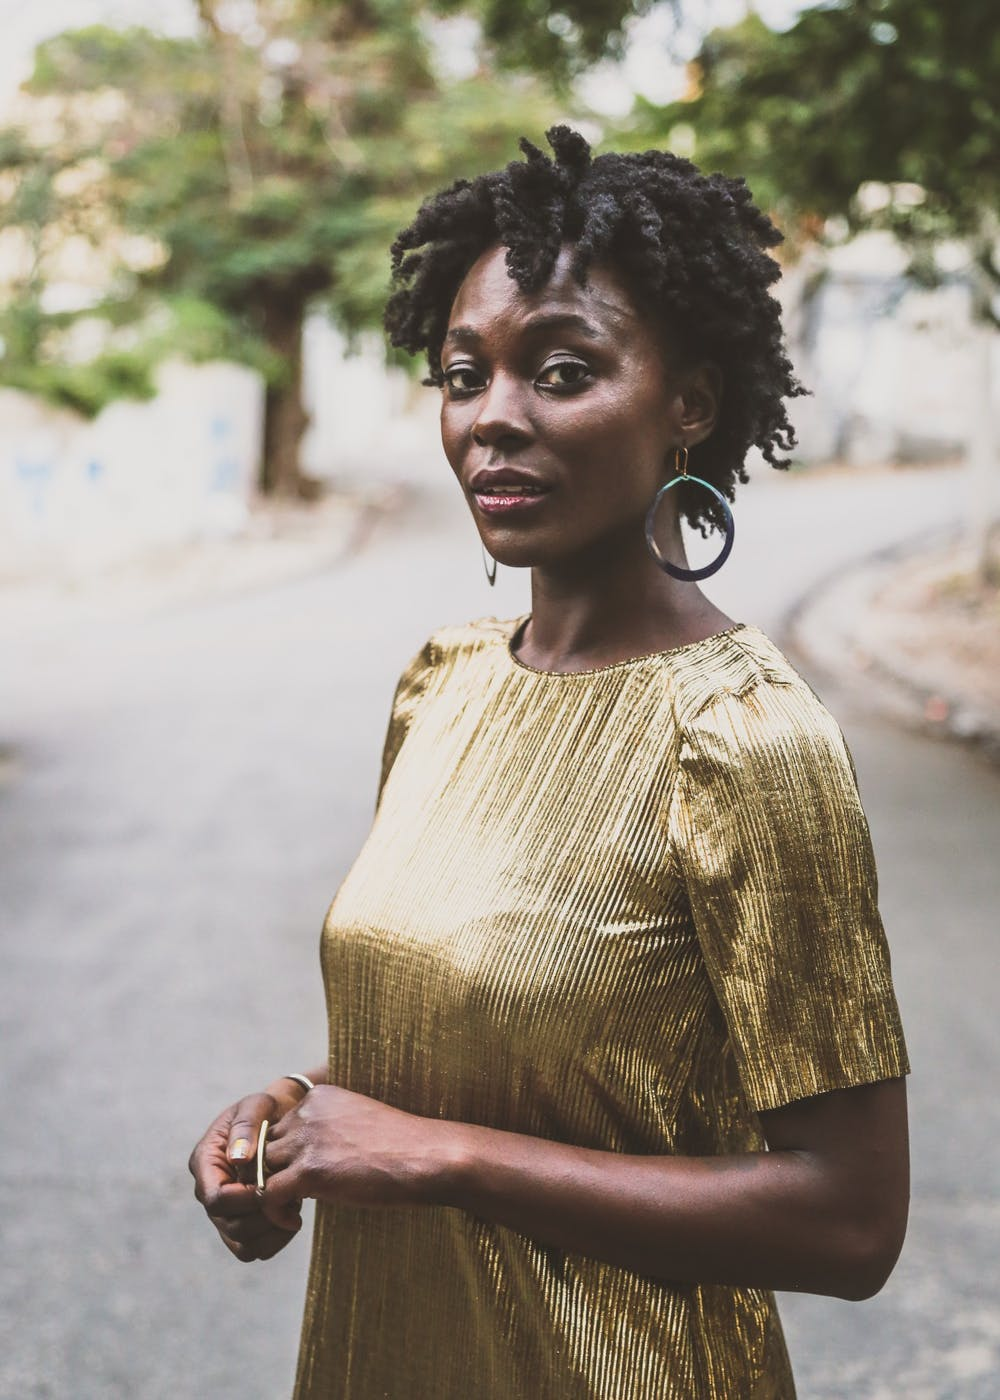 Grammy-nominated artist will bring celebration of Haitian musicians to Chapel Hill